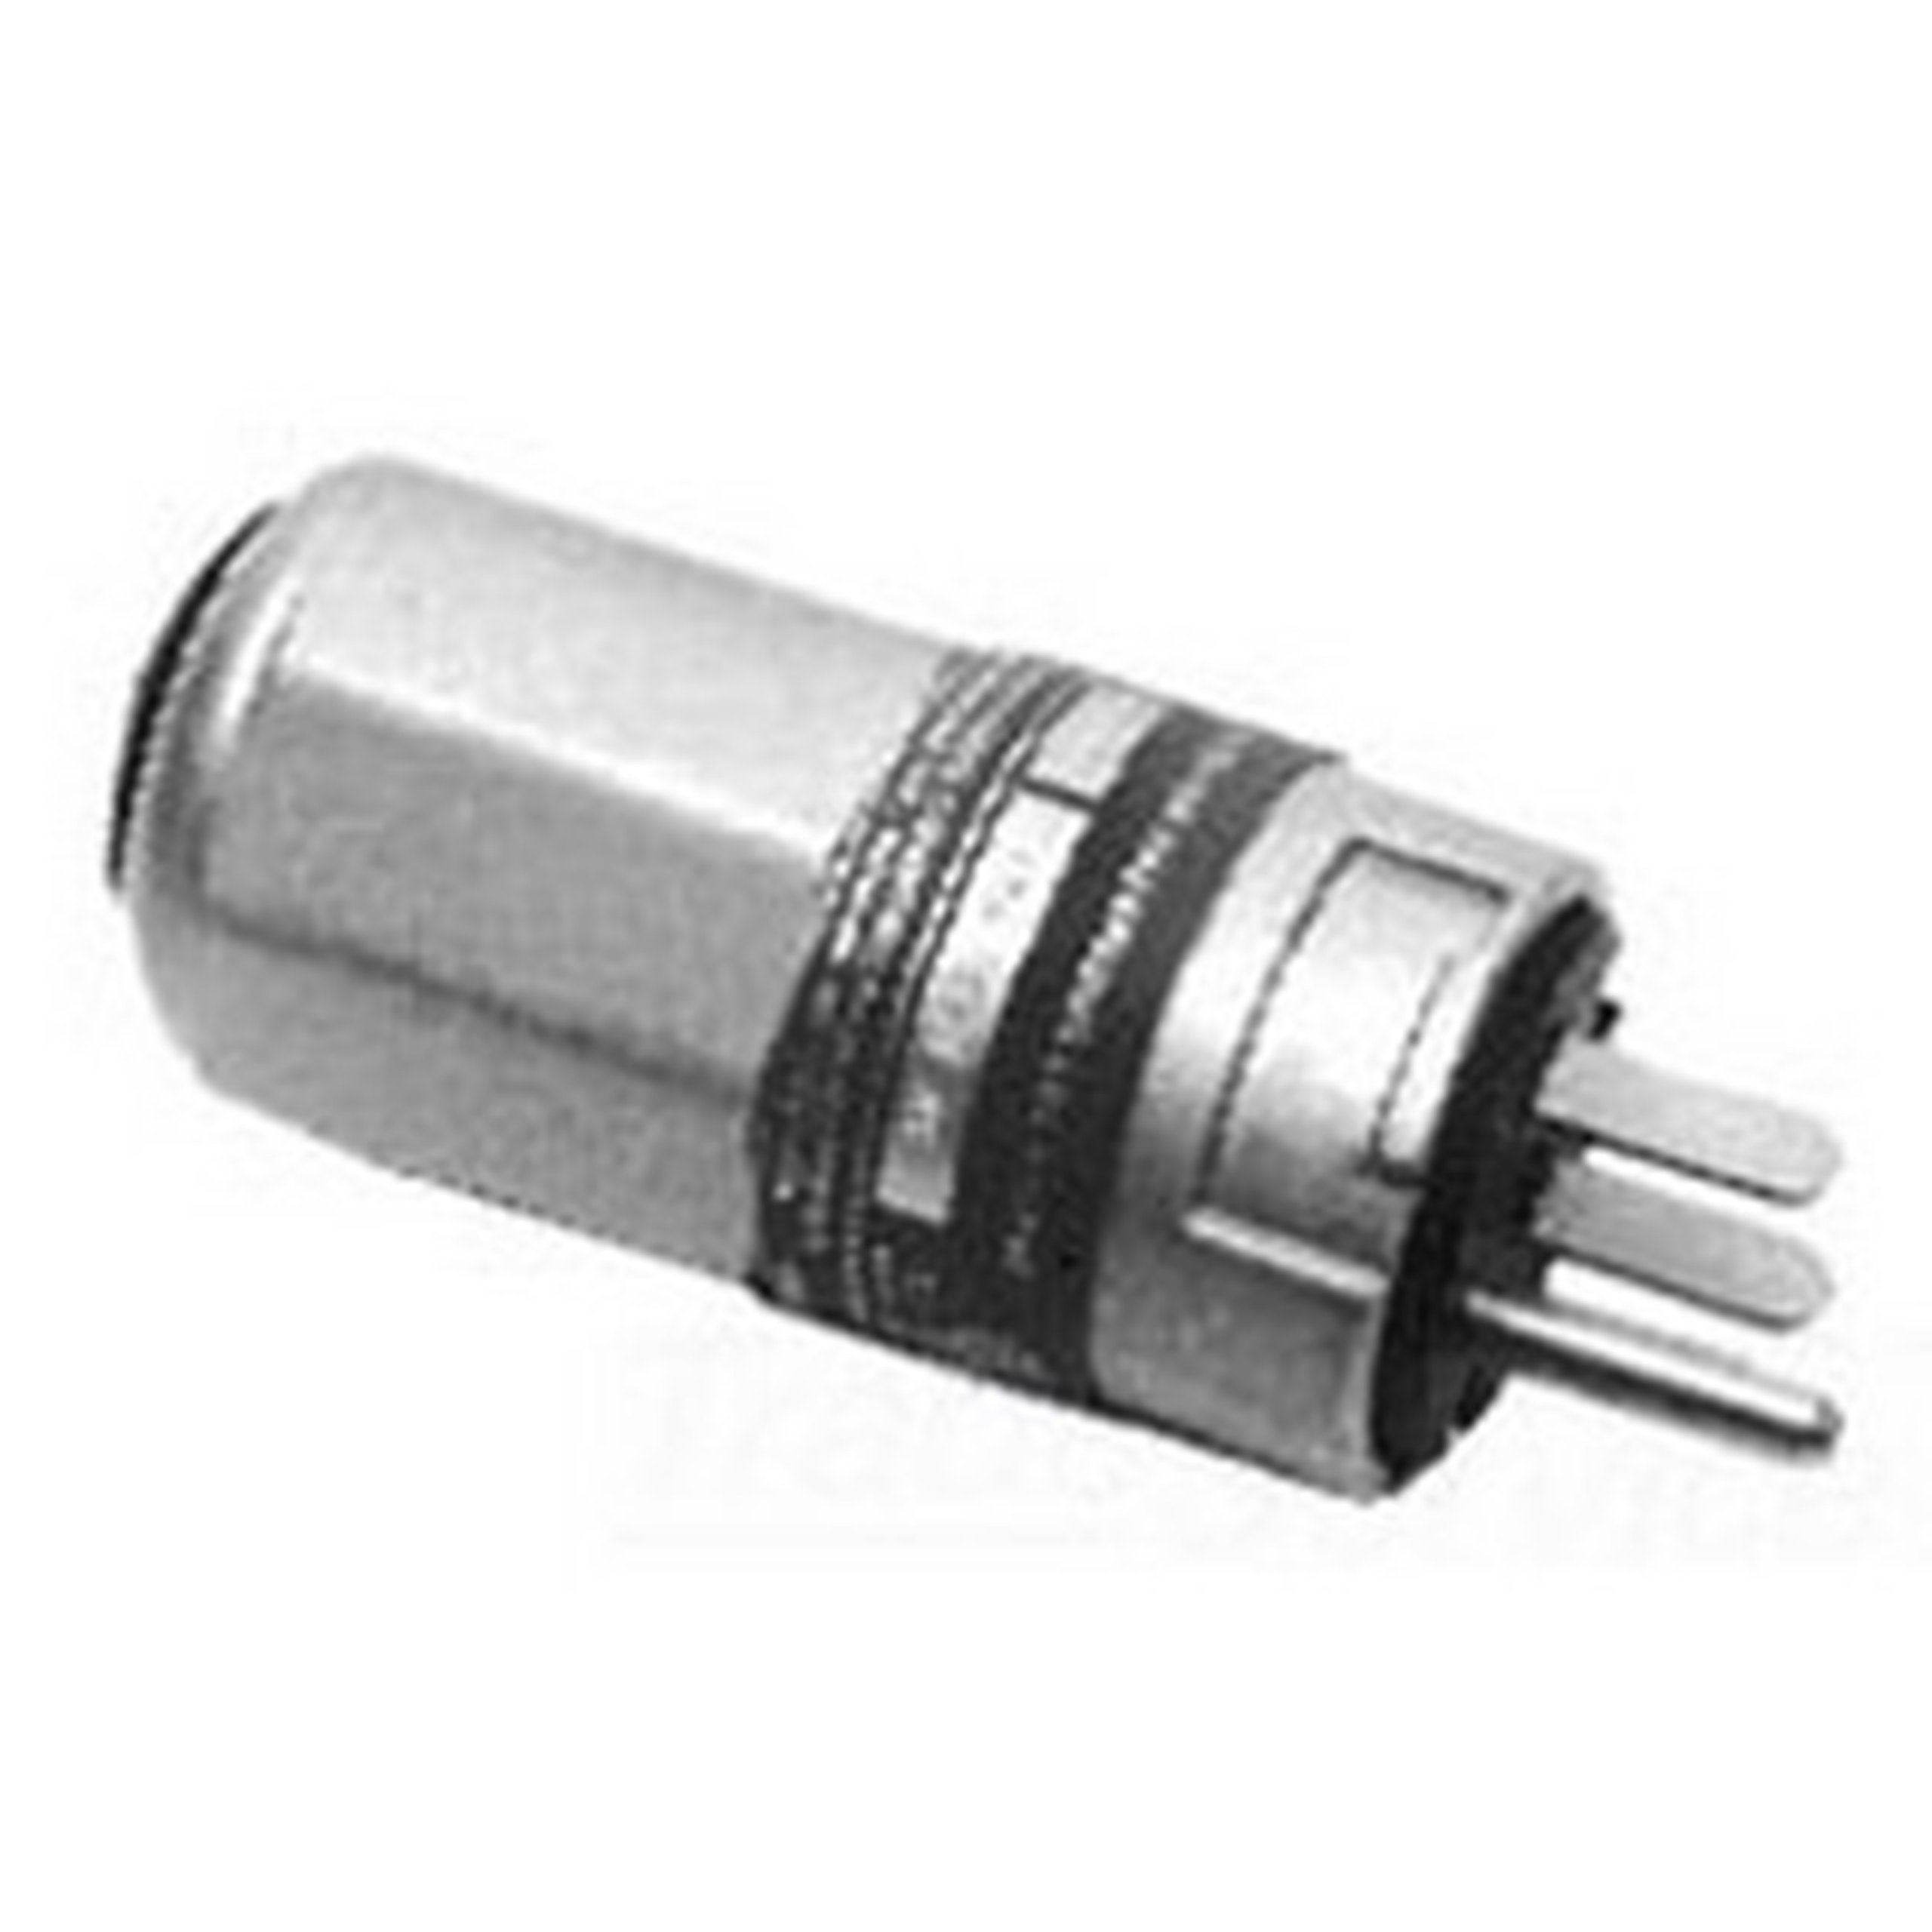 Crouse-Hinds ENP5201 20 Amp Plug for Circuit Breaking Receptacles